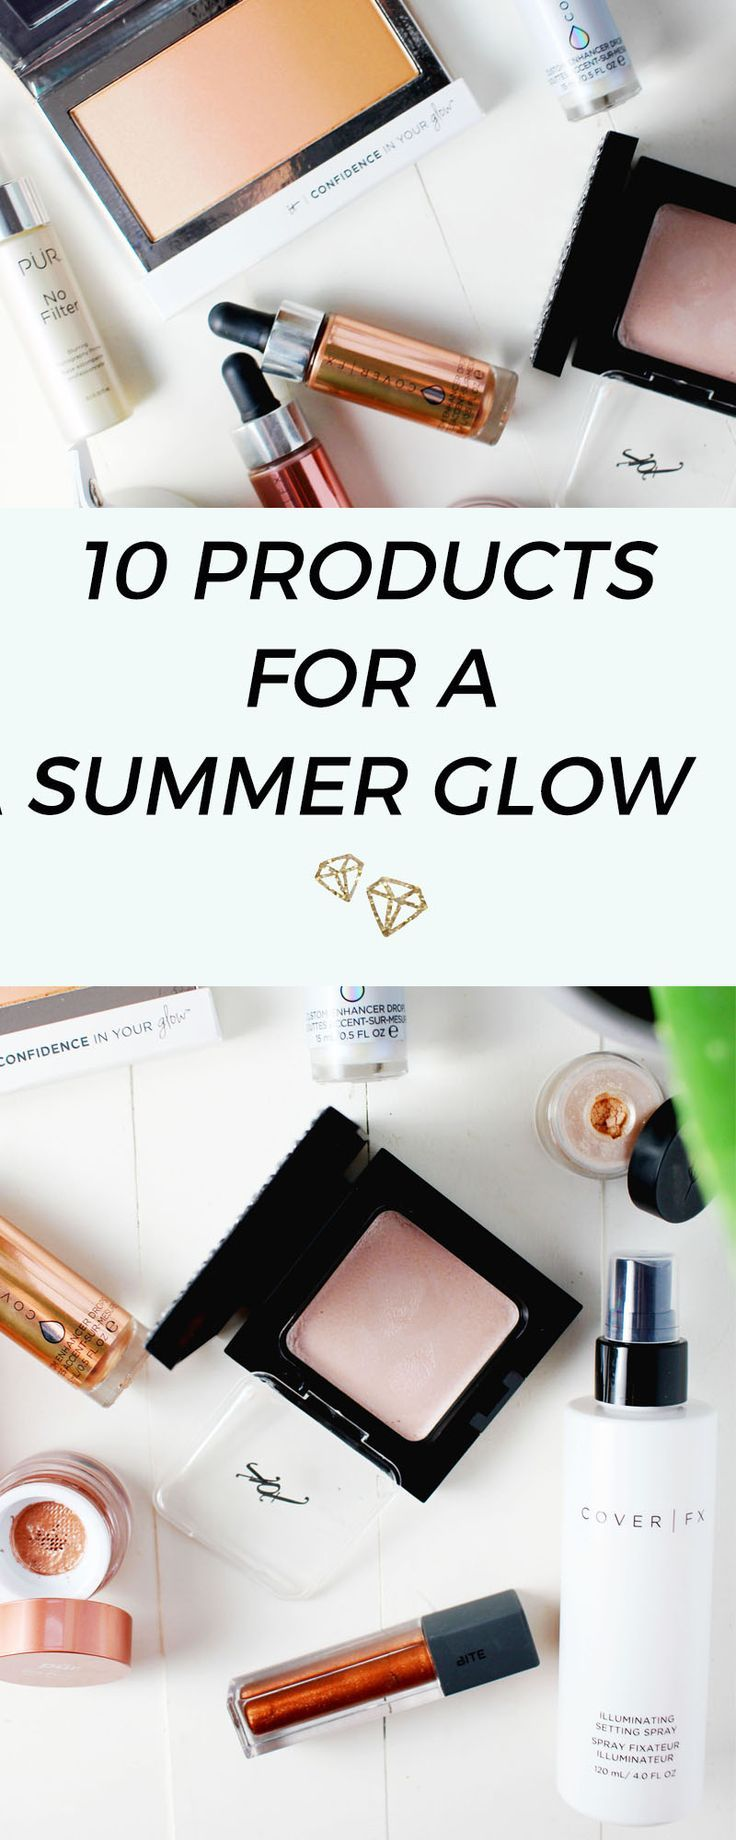 Beauty products that give a summer glow with highlighting and illumination qualities #highlighter #makeup #makeupartist